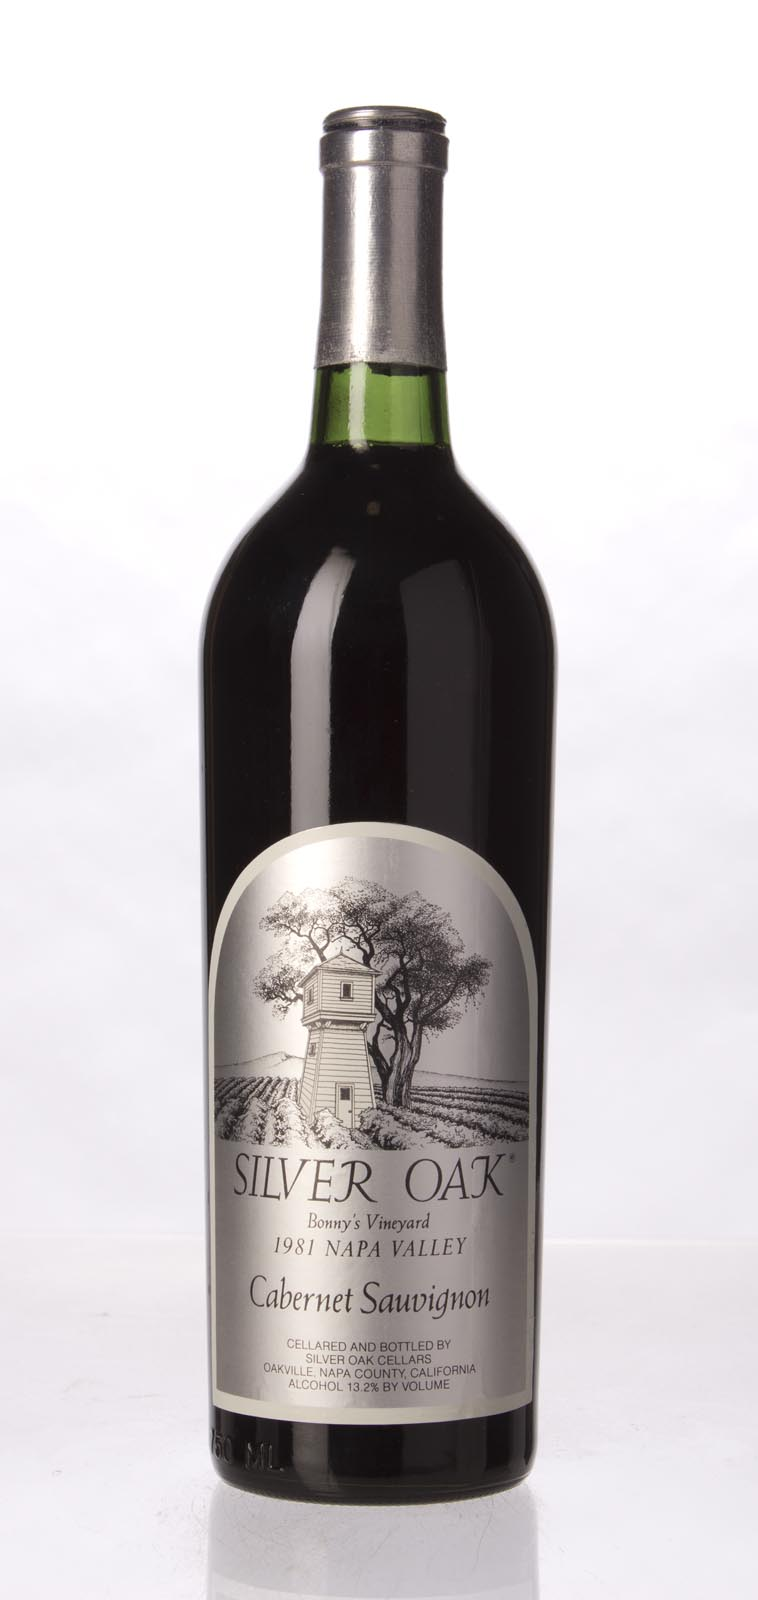 Silver Oak Cabernet Sauvignon Bonny`s Vineyard 1981, 750mL () from The BPW - Merchants of rare and fine wines.